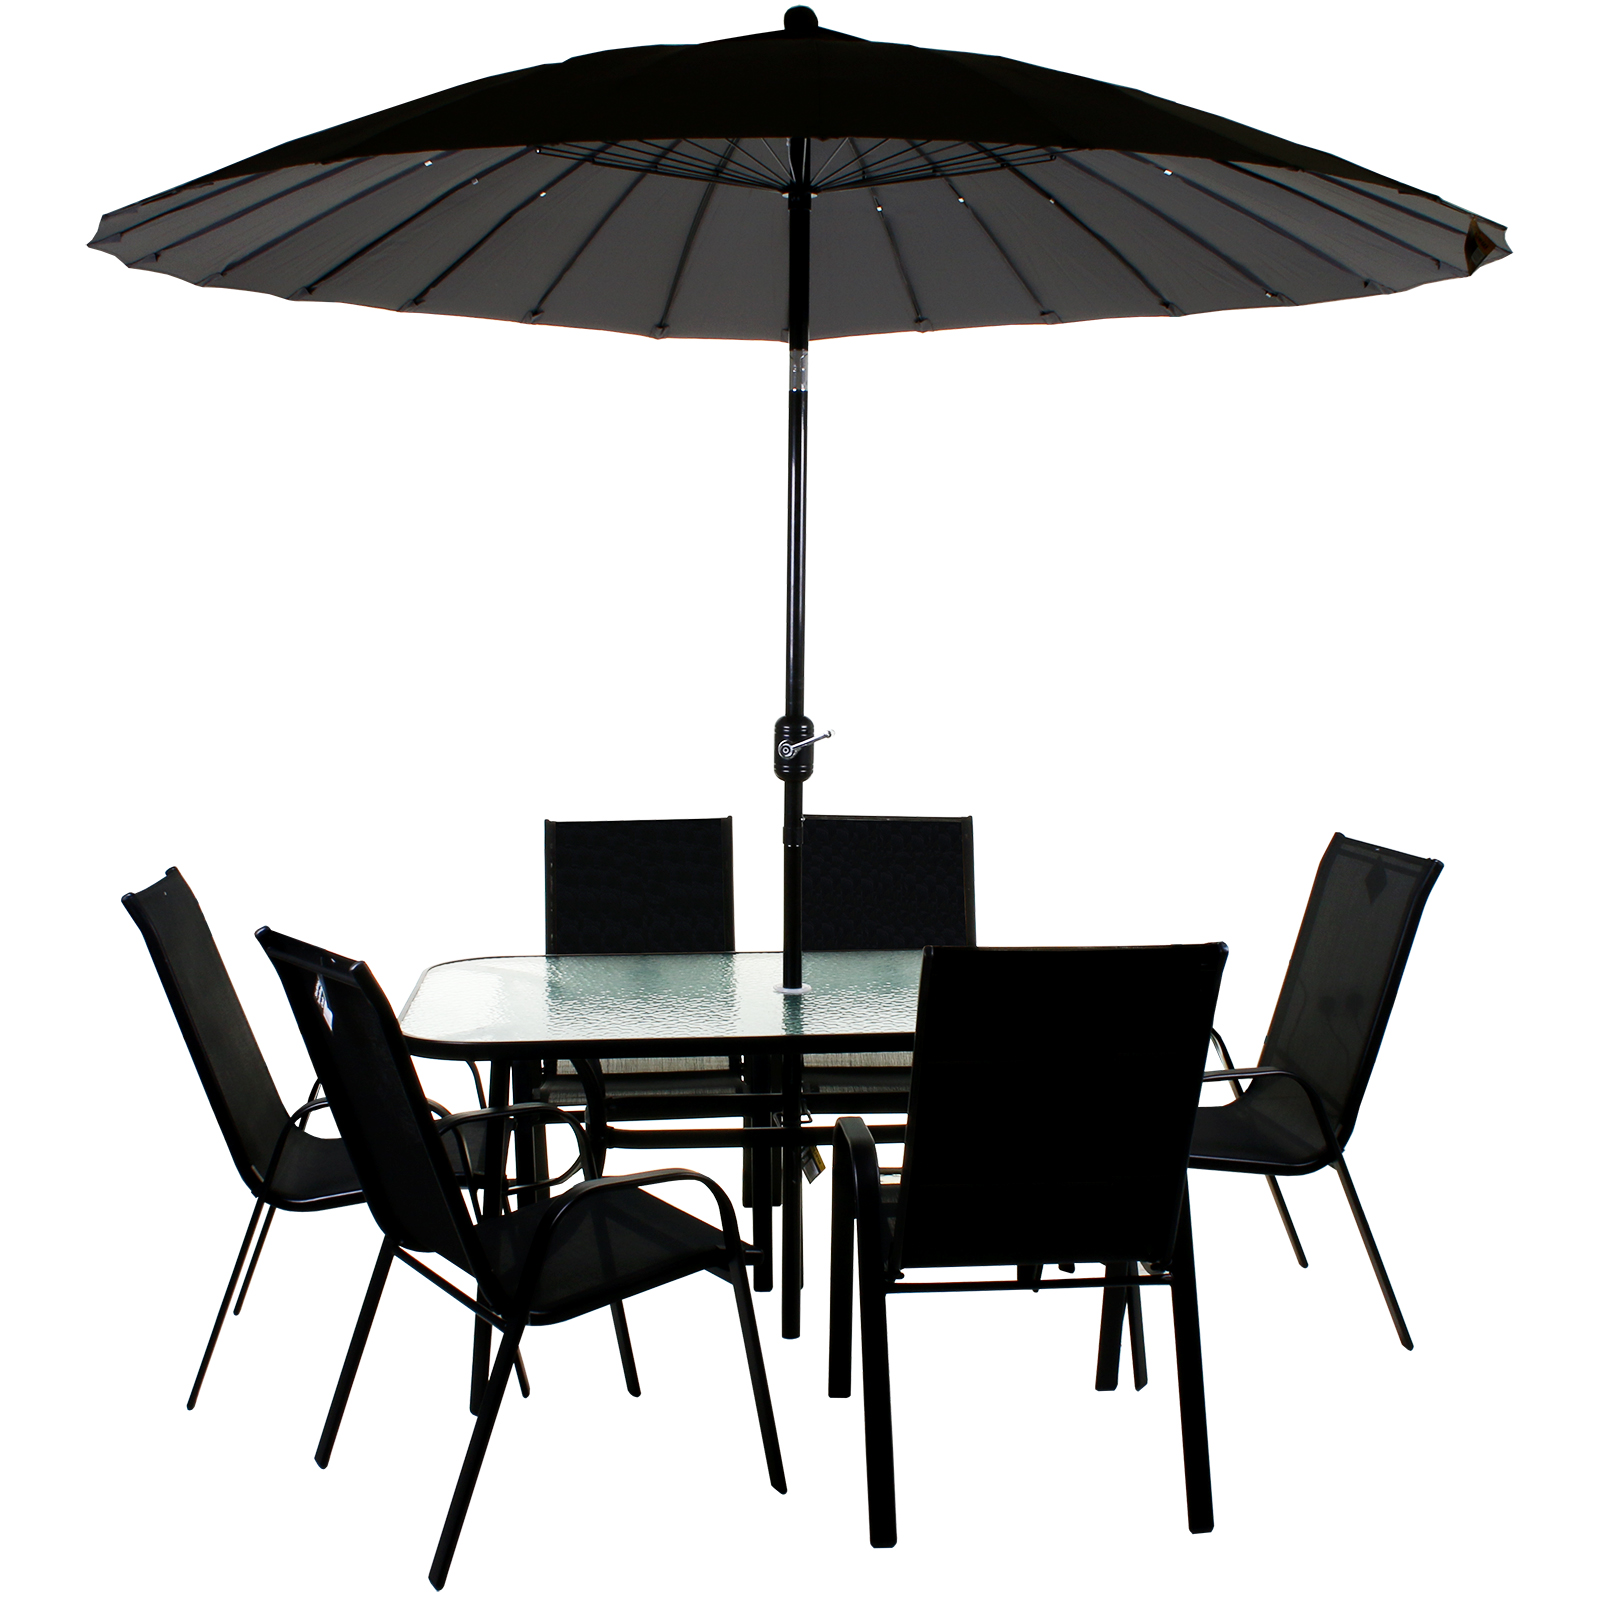 Details about GARDEN FURNITURE SET PATIO OUTDOOR LARGE SEATING DINING AREA  CHAIR TABLE PARASOL